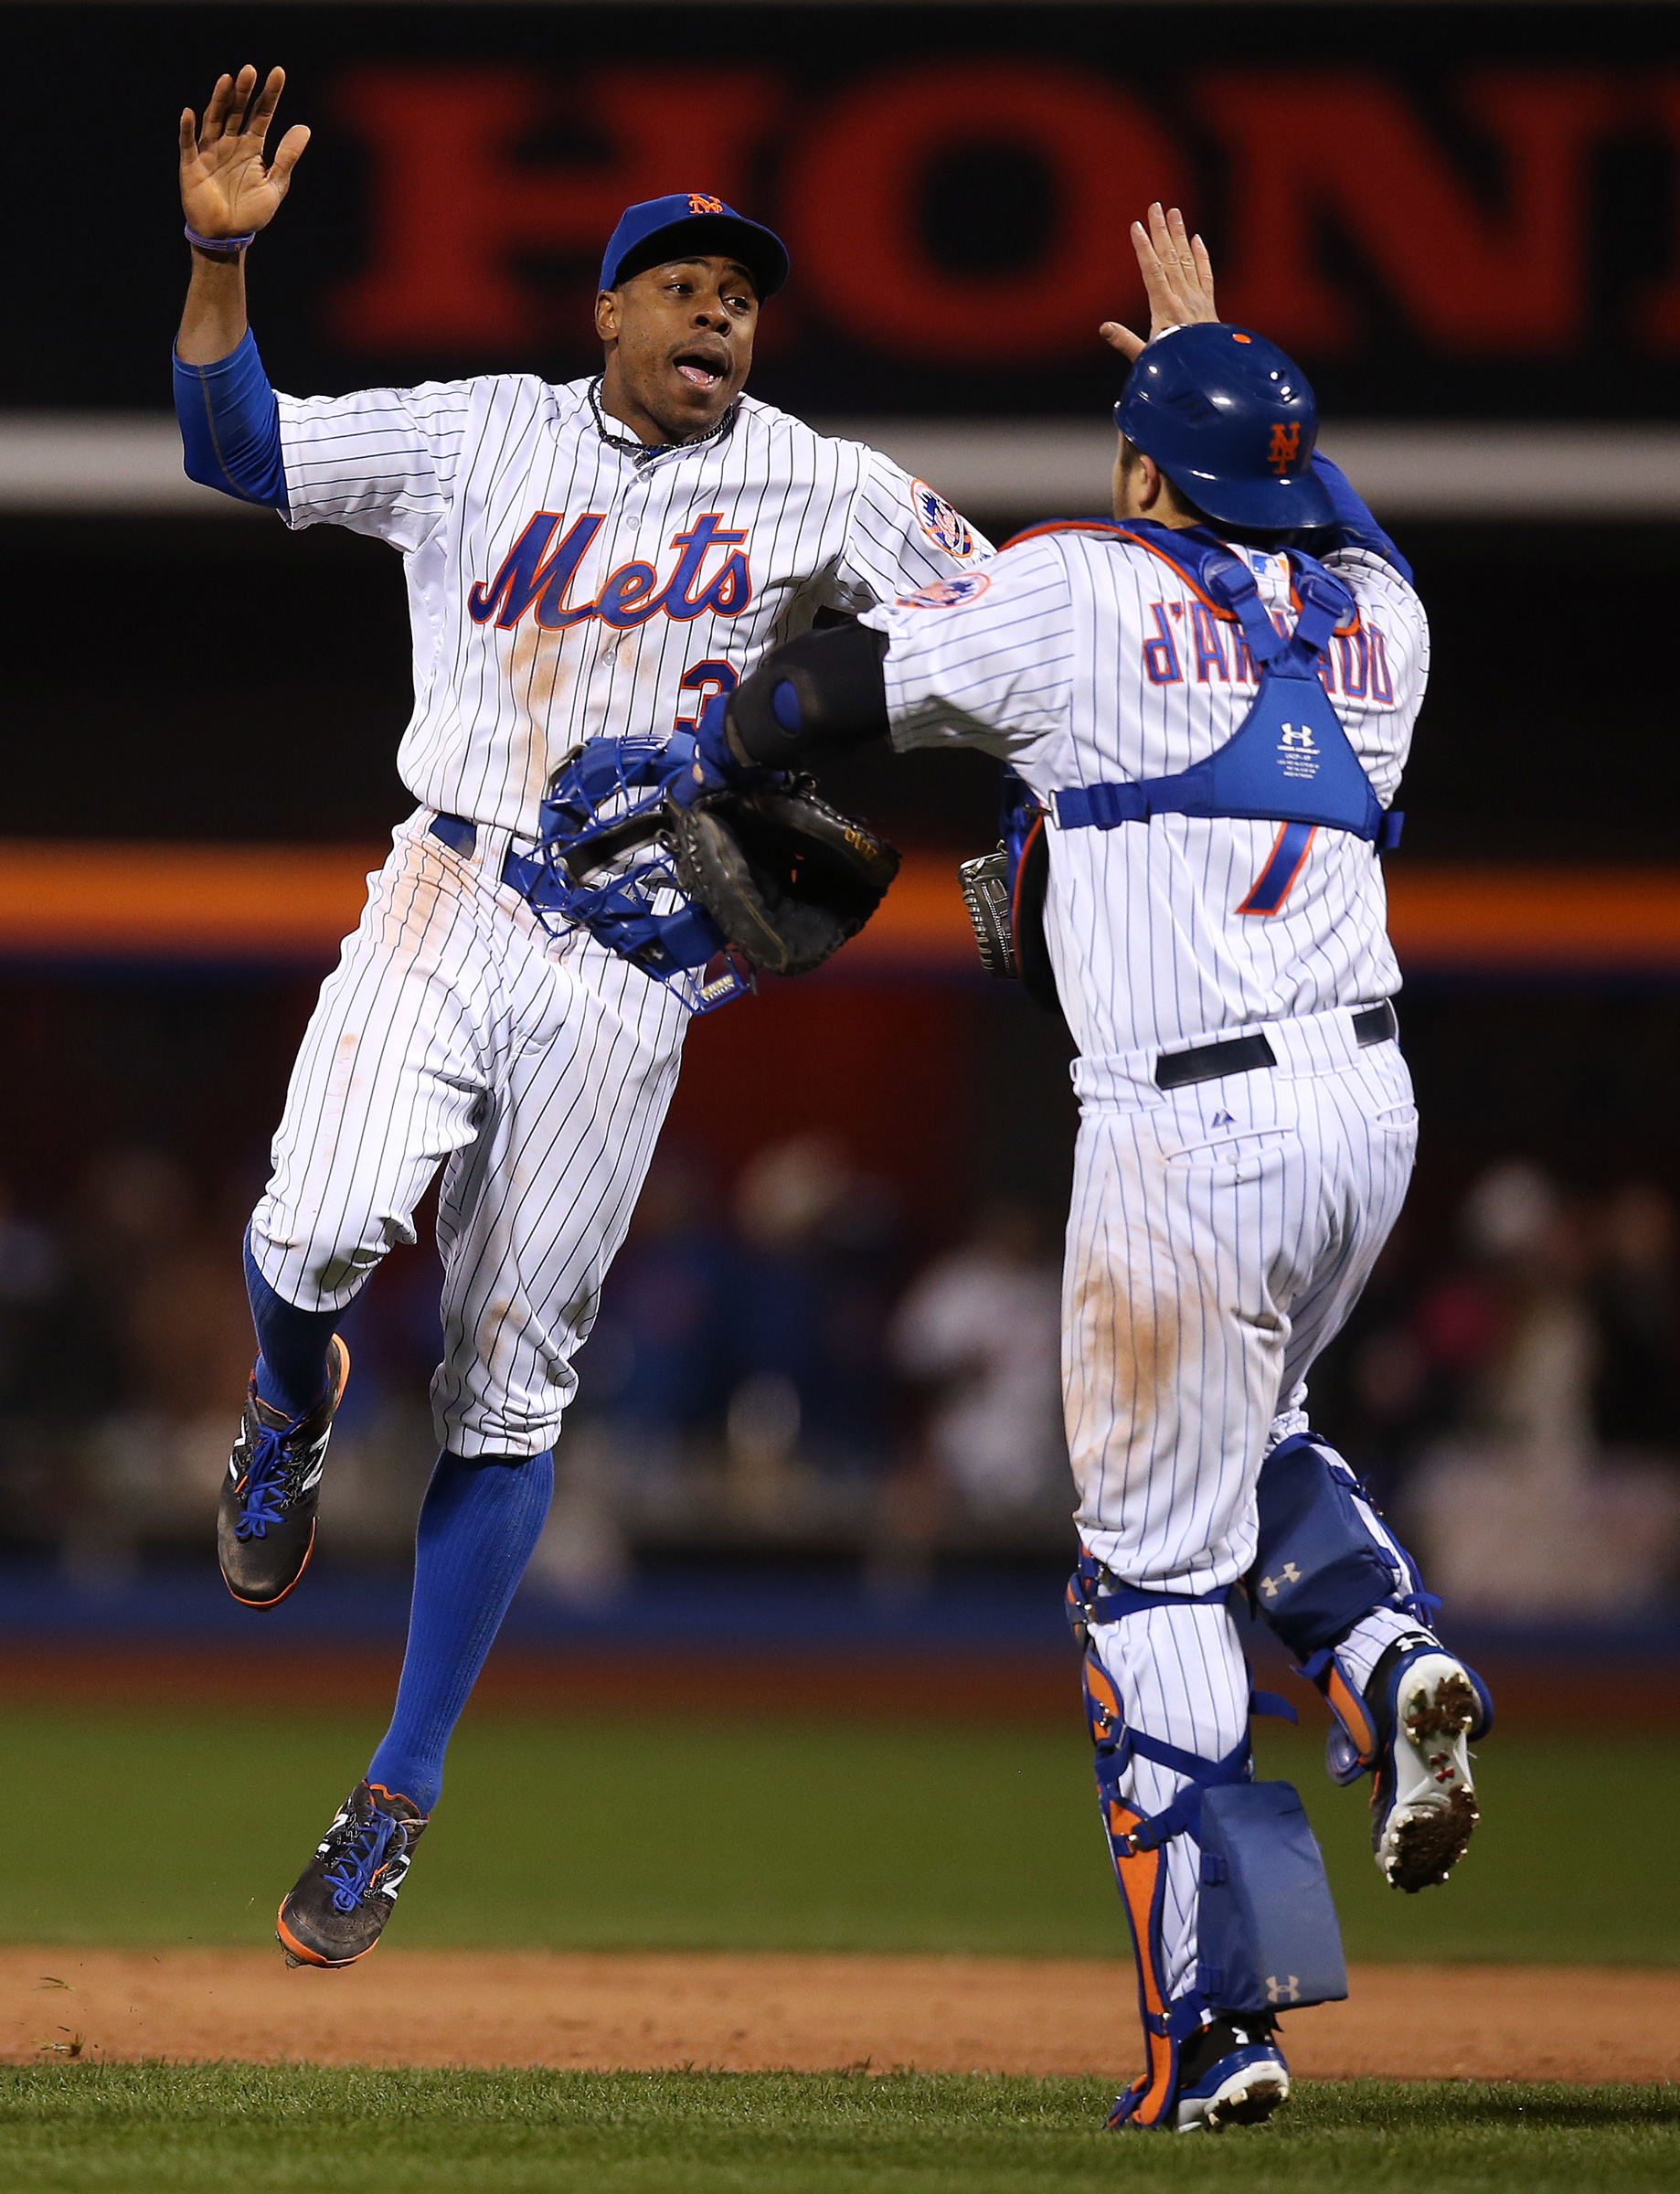 Curtis Granderson #3 and Travis d'Arnaud #7 of the New York Mets celebrate after defeating the Kansas City Royals 9-3 in Game 3 of the 2015 World Series at Citi Field on Friday, October 30, 2015 in the Queens borough of New York City.